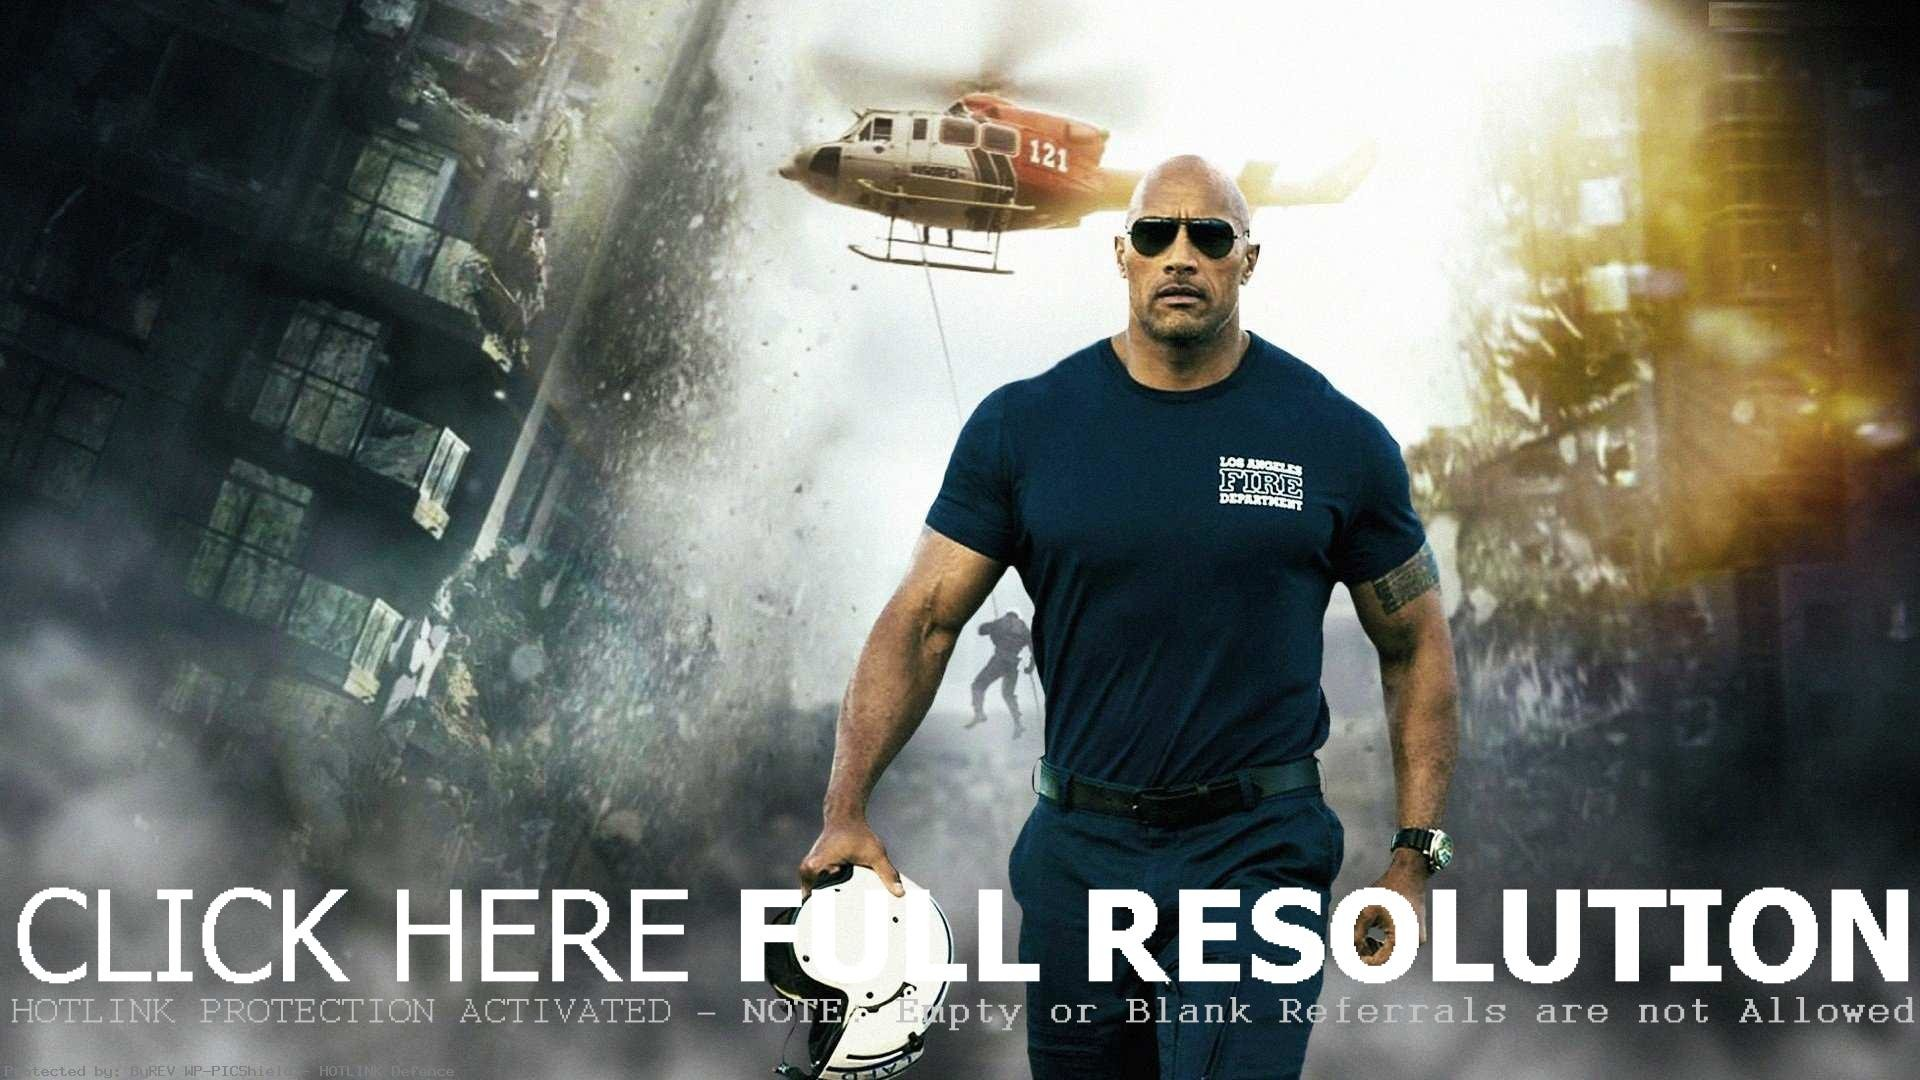 The rock wallpaper hd 2018 50 images 1920x1080 john cena wallpapers hd wallpapers backgrounds of your choice 25601440 john cena hd wallpapers 63 wallpapers adorable wallpapers desktop voltagebd Images